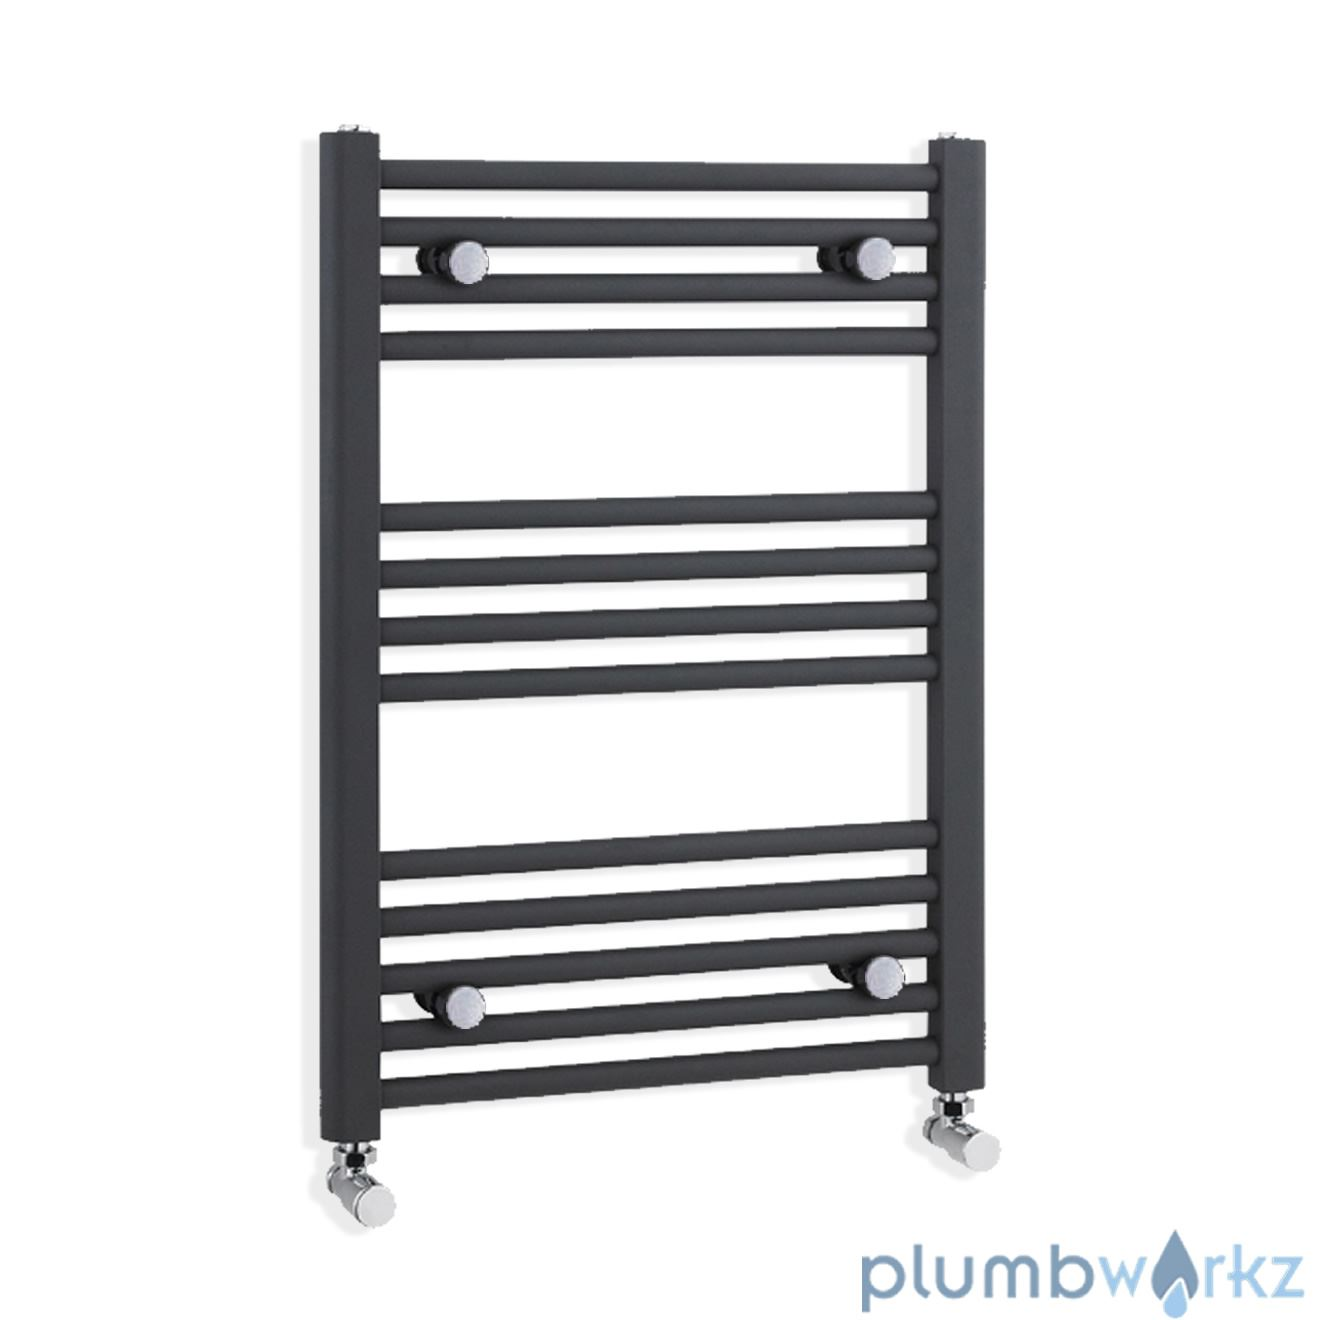 Heated Towel Rail, Towel Radiator Straight & Curved - All Sizes Anthracite